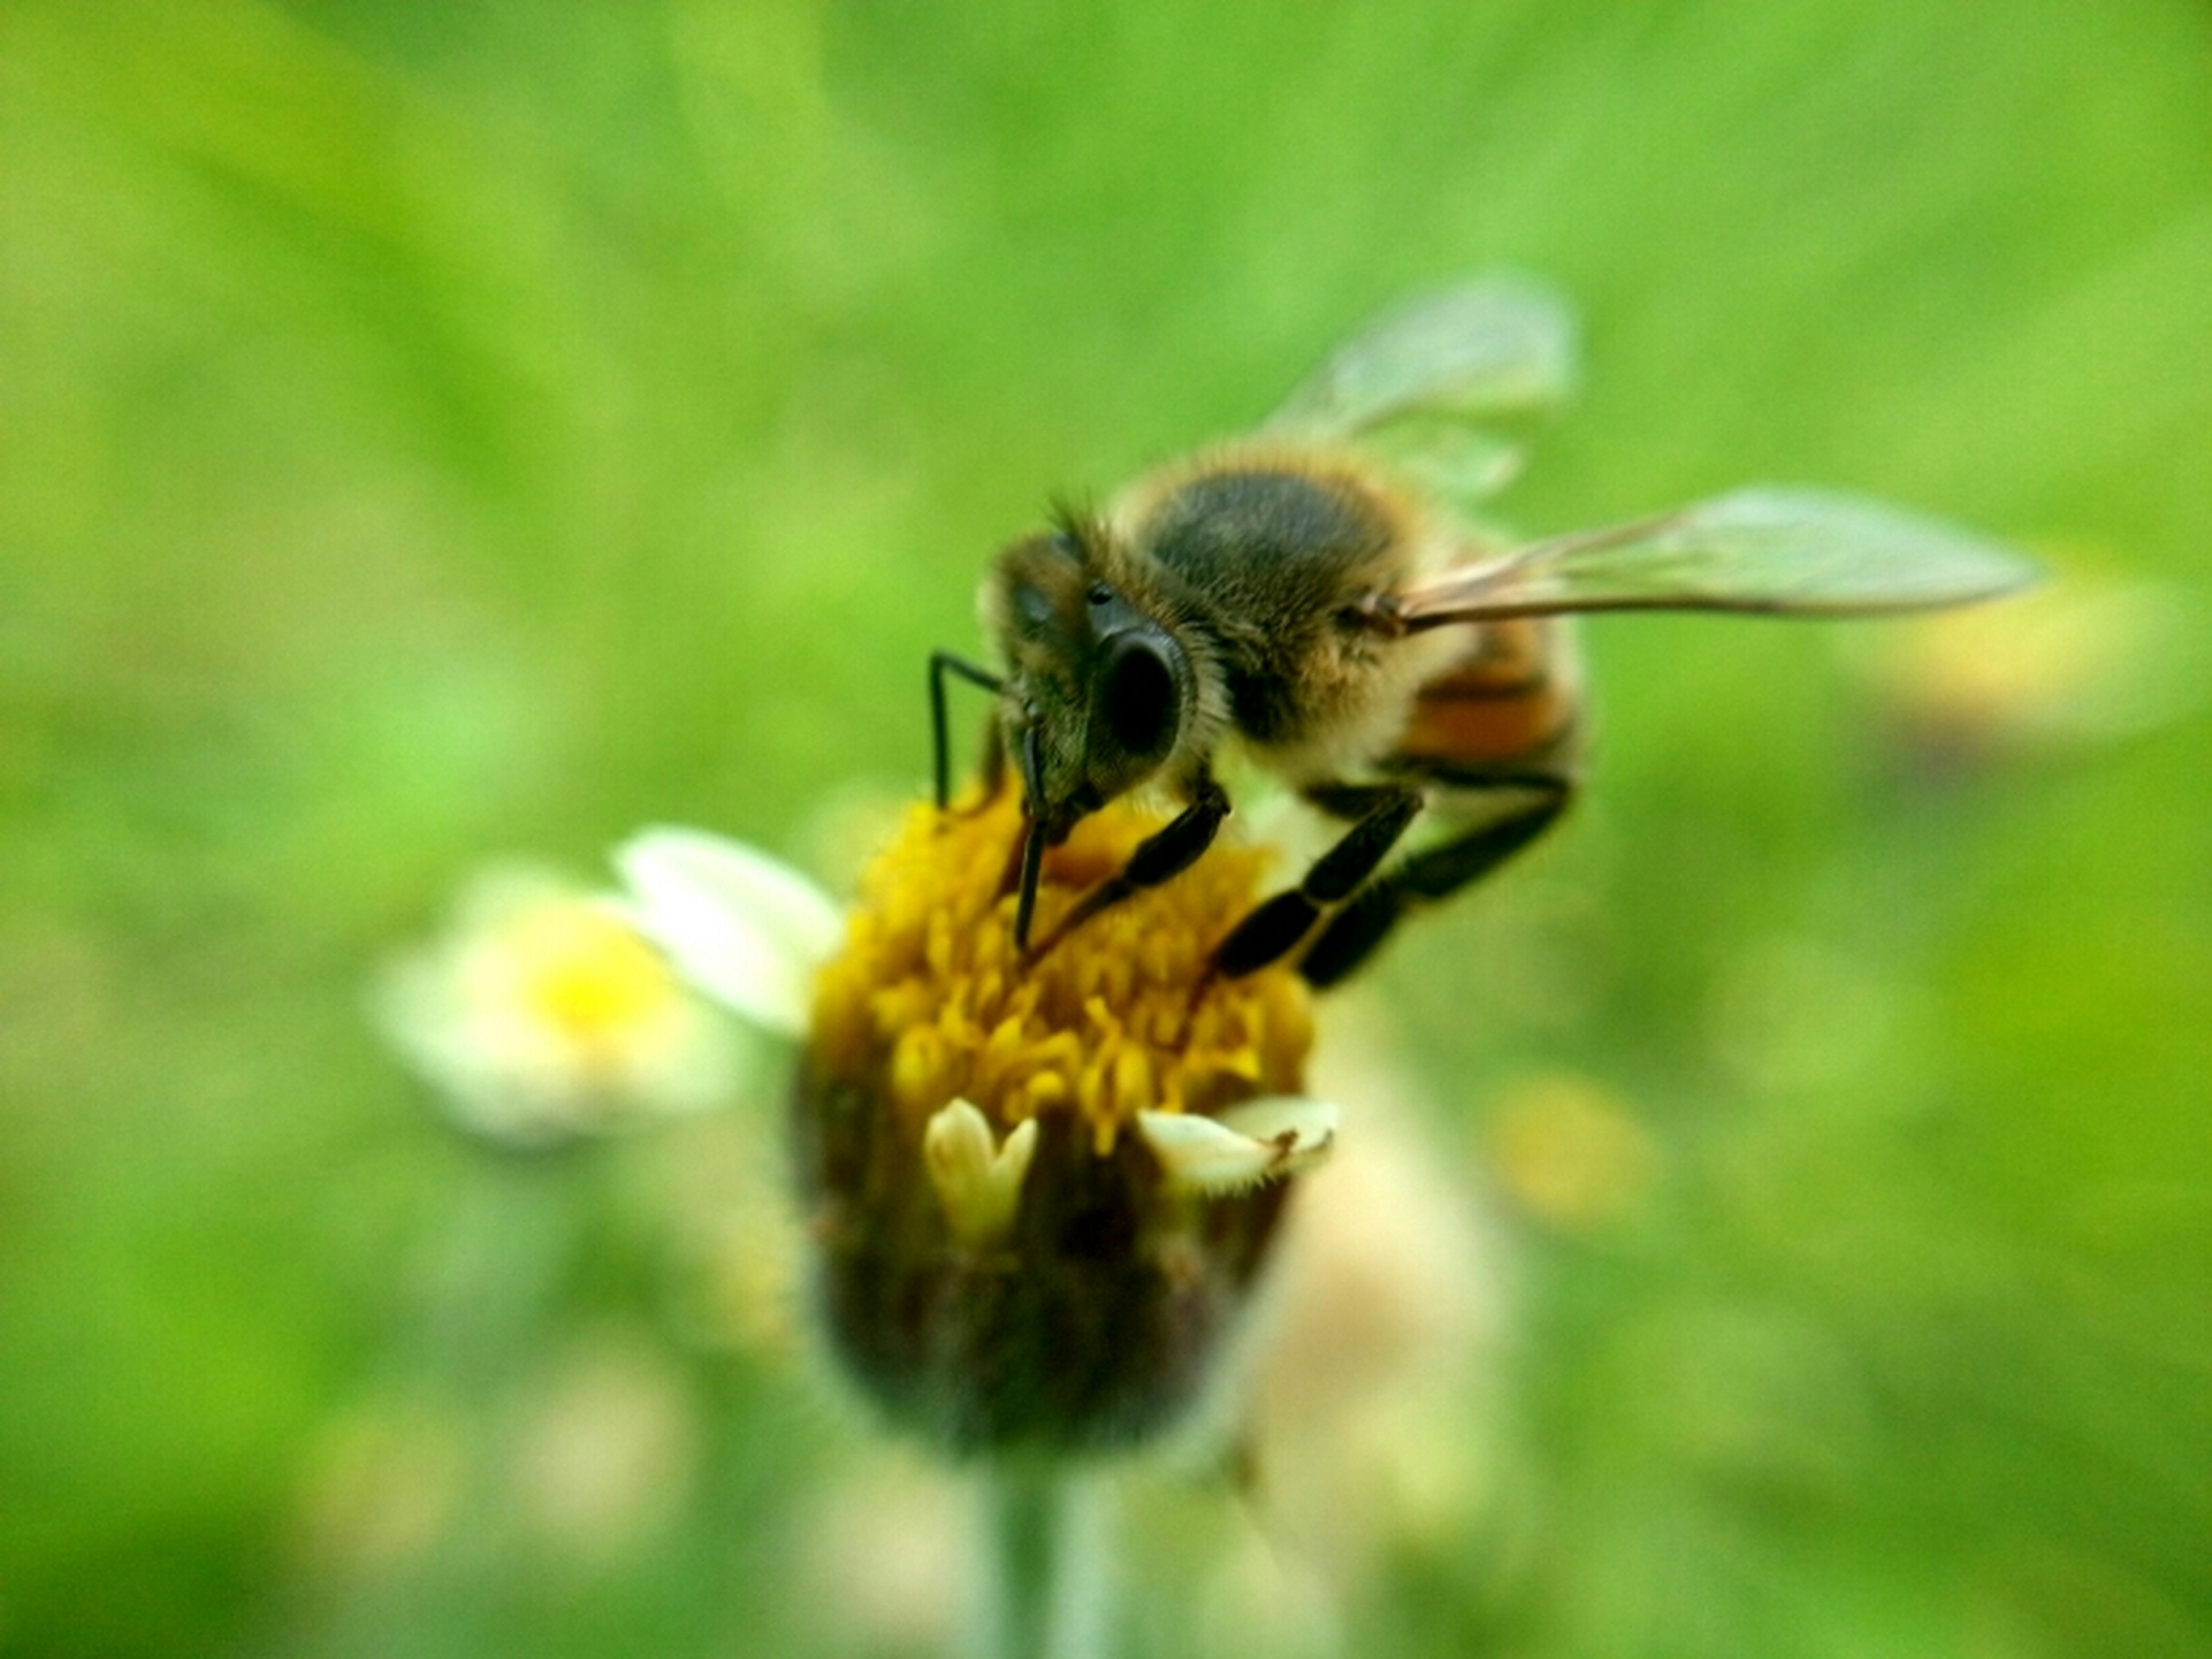 flower, one animal, animals in the wild, insect, animal themes, wildlife, close-up, fragility, flower head, freshness, pollination, petal, focus on foreground, bee, yellow, beauty in nature, nature, growth, selective focus, single flower